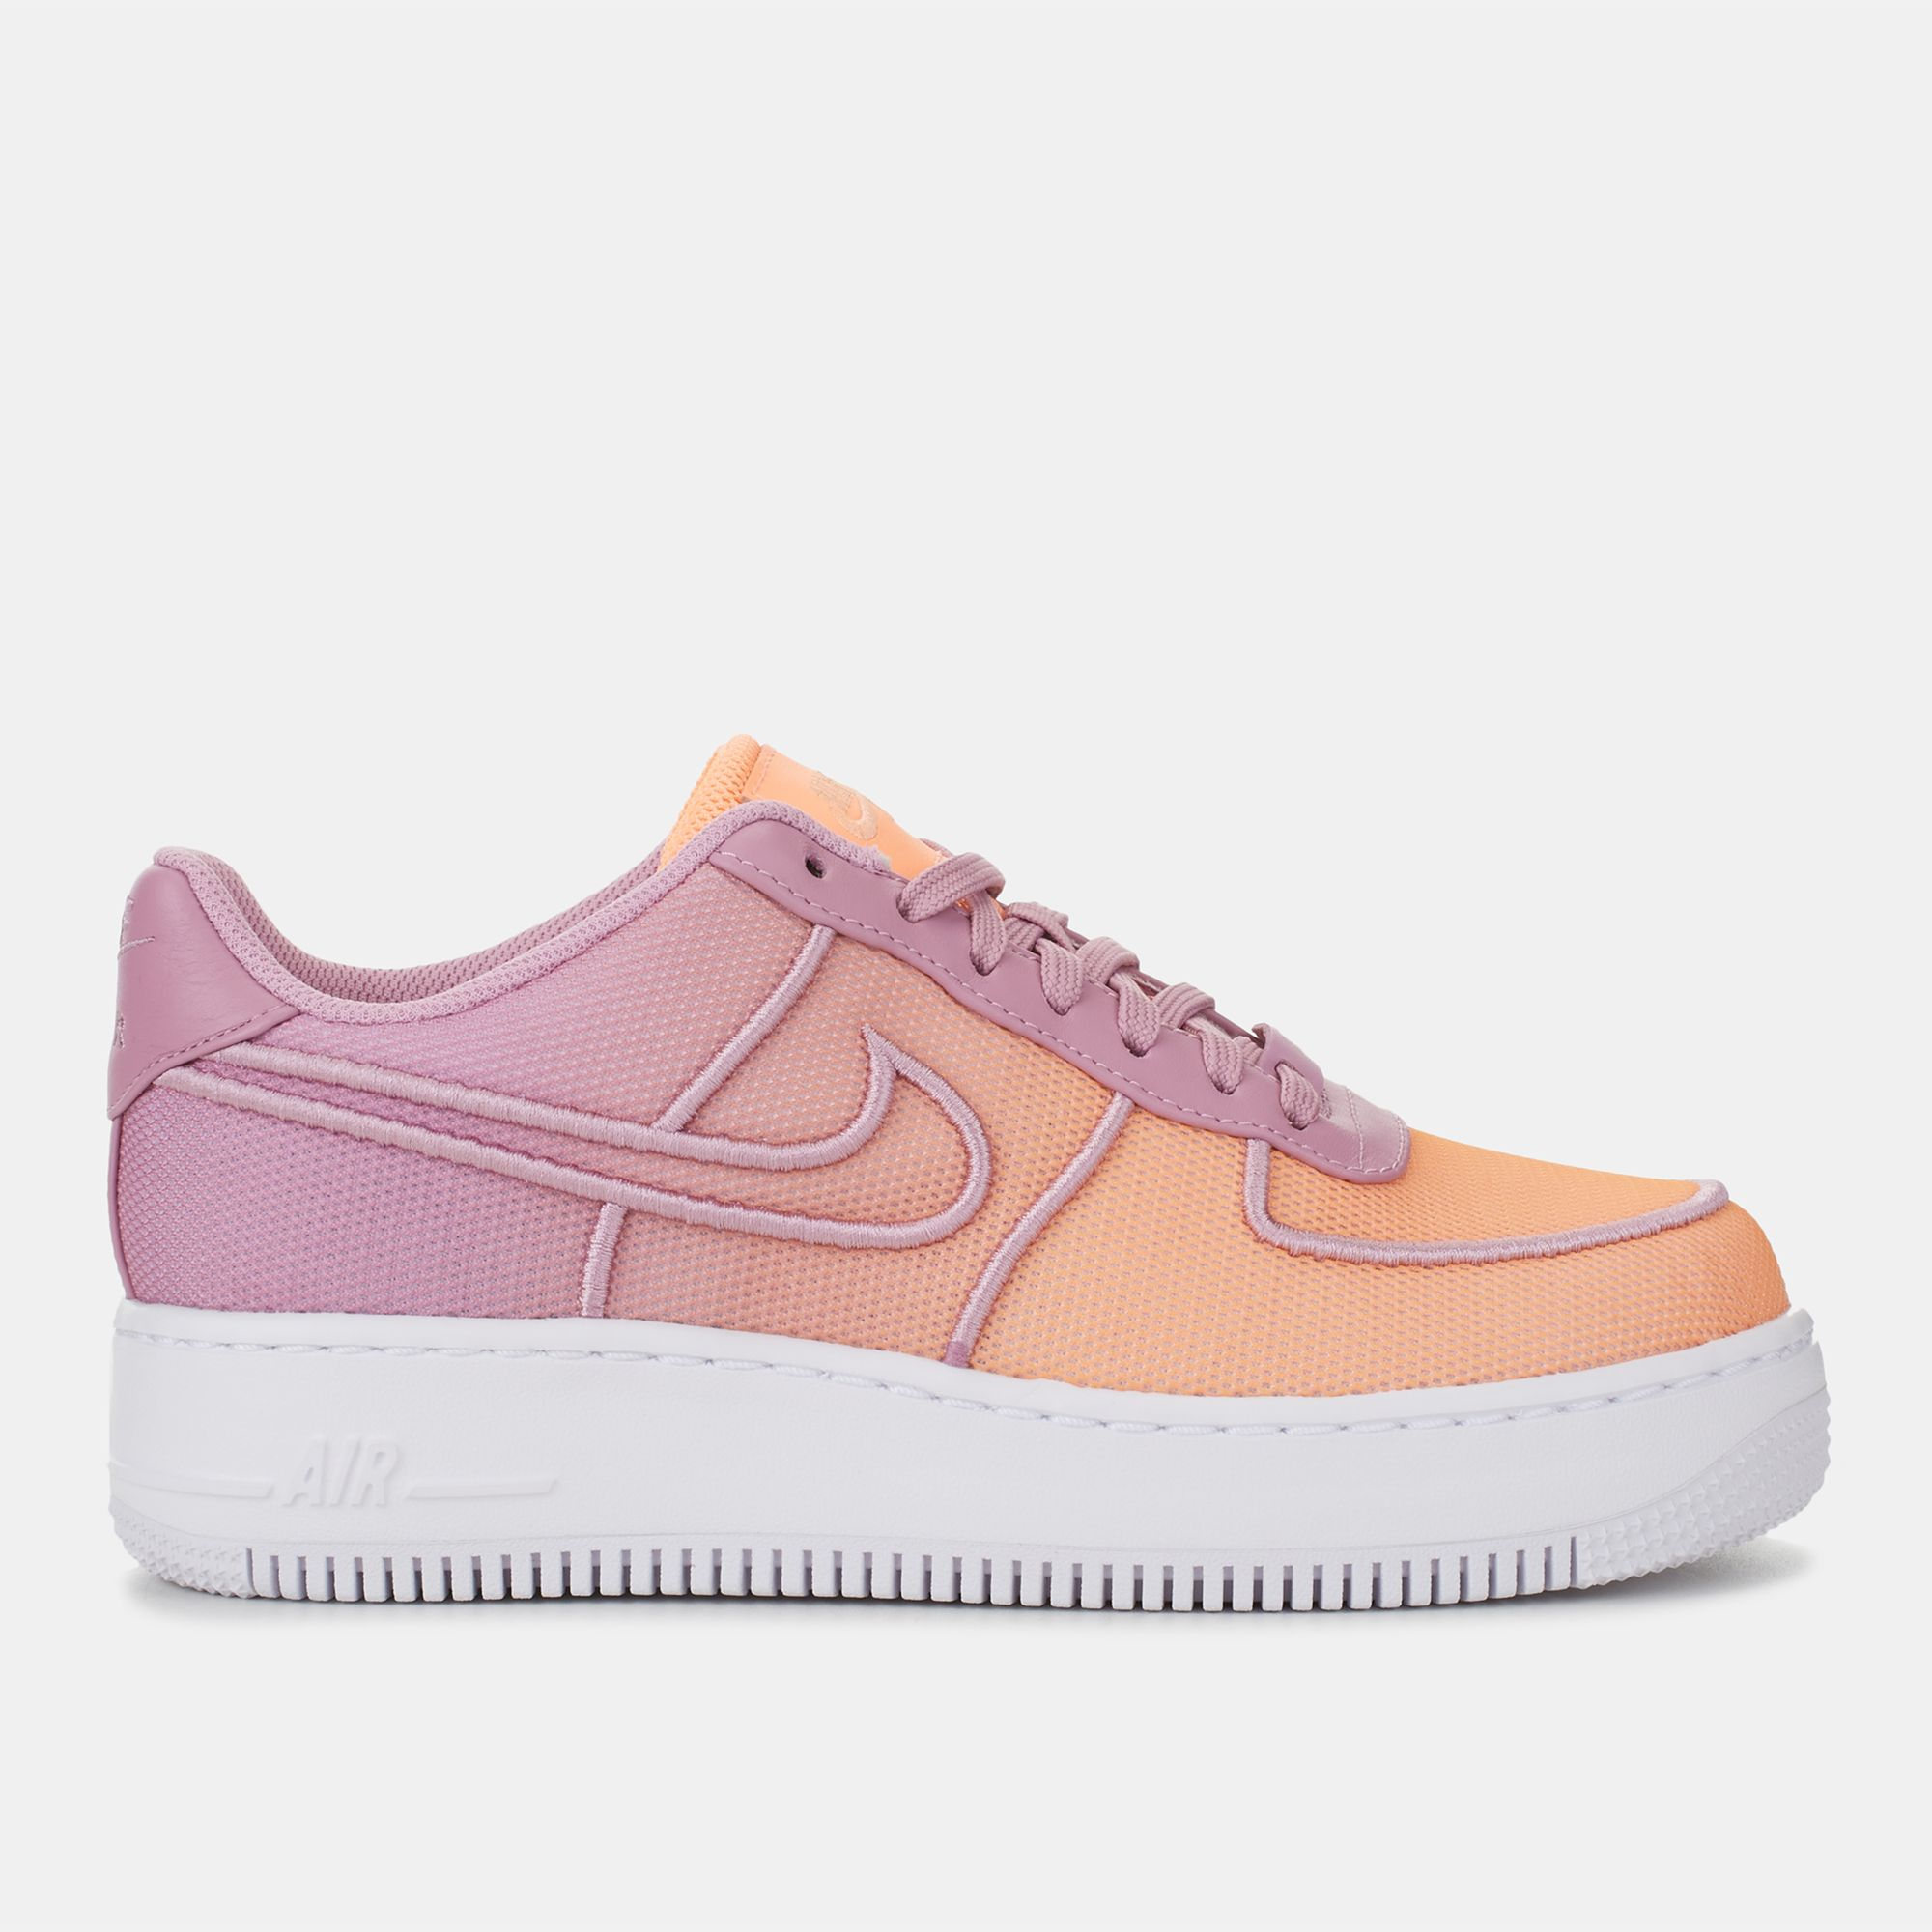 buy popular f2719 86095 Nike Air Force 1 Low Upstep BR Shoe